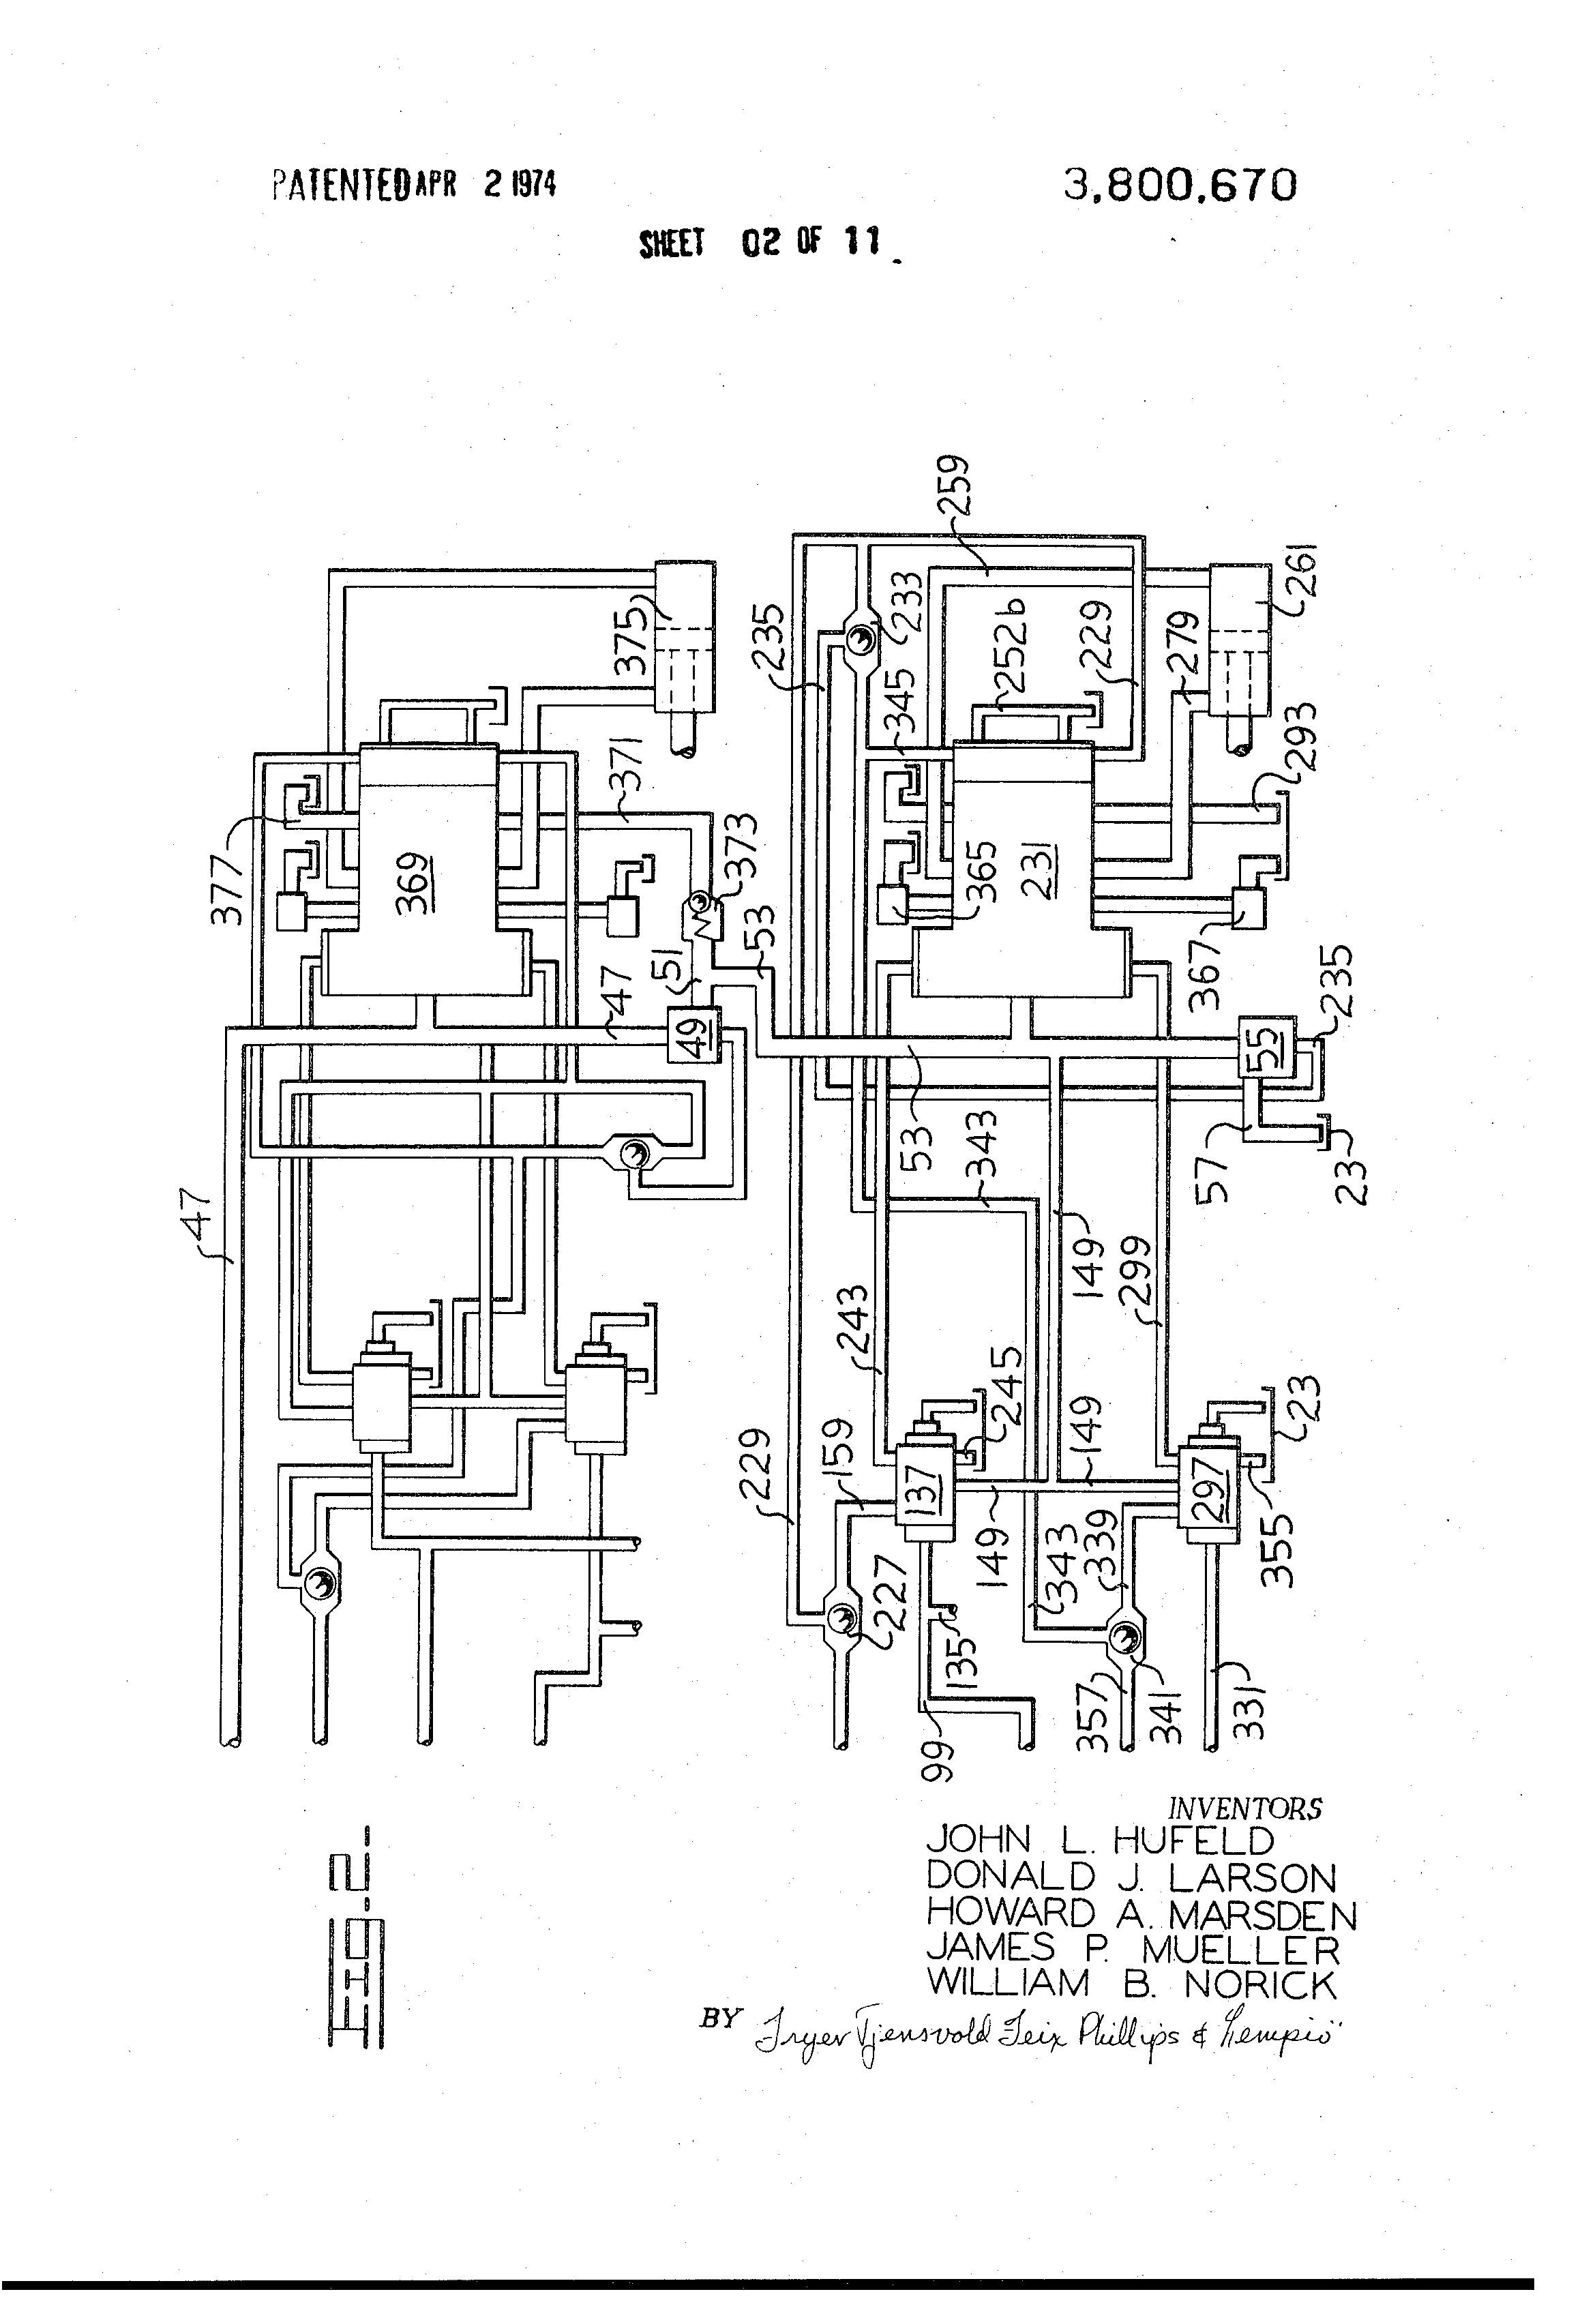 Wiring On A Tractor Work Lights Kubota Z482 Diagram Experience Of Diagrams Light Ea300 Engine Parts Manual